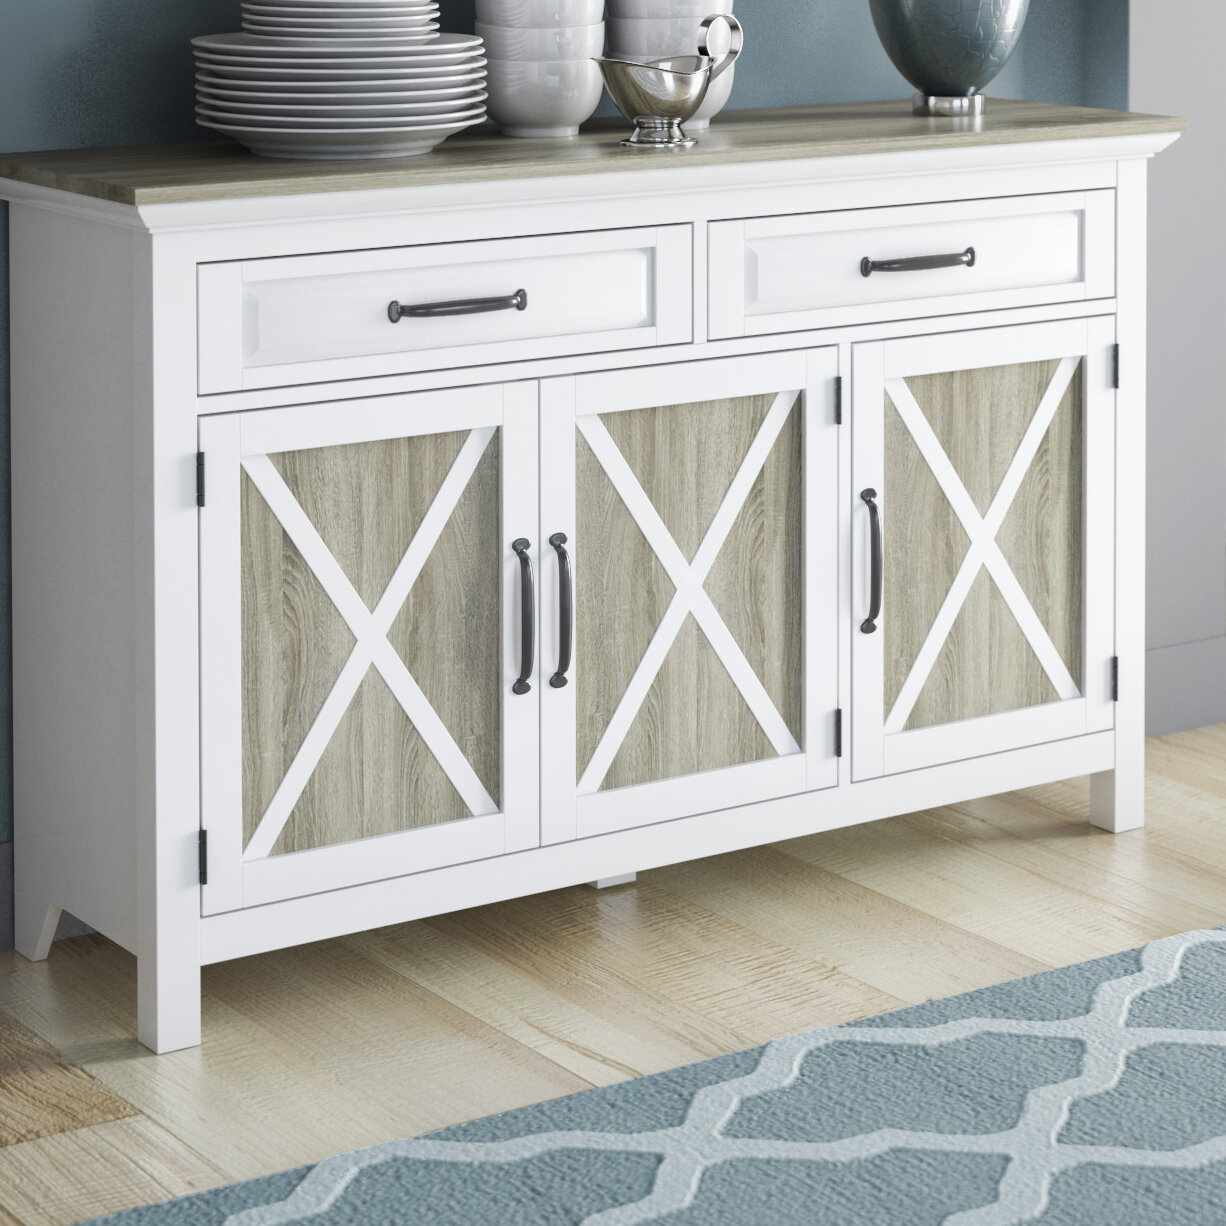 August Grove Haverly Sideboard & Reviews | Wayfair Regarding Rutherford Sideboards (View 4 of 30)